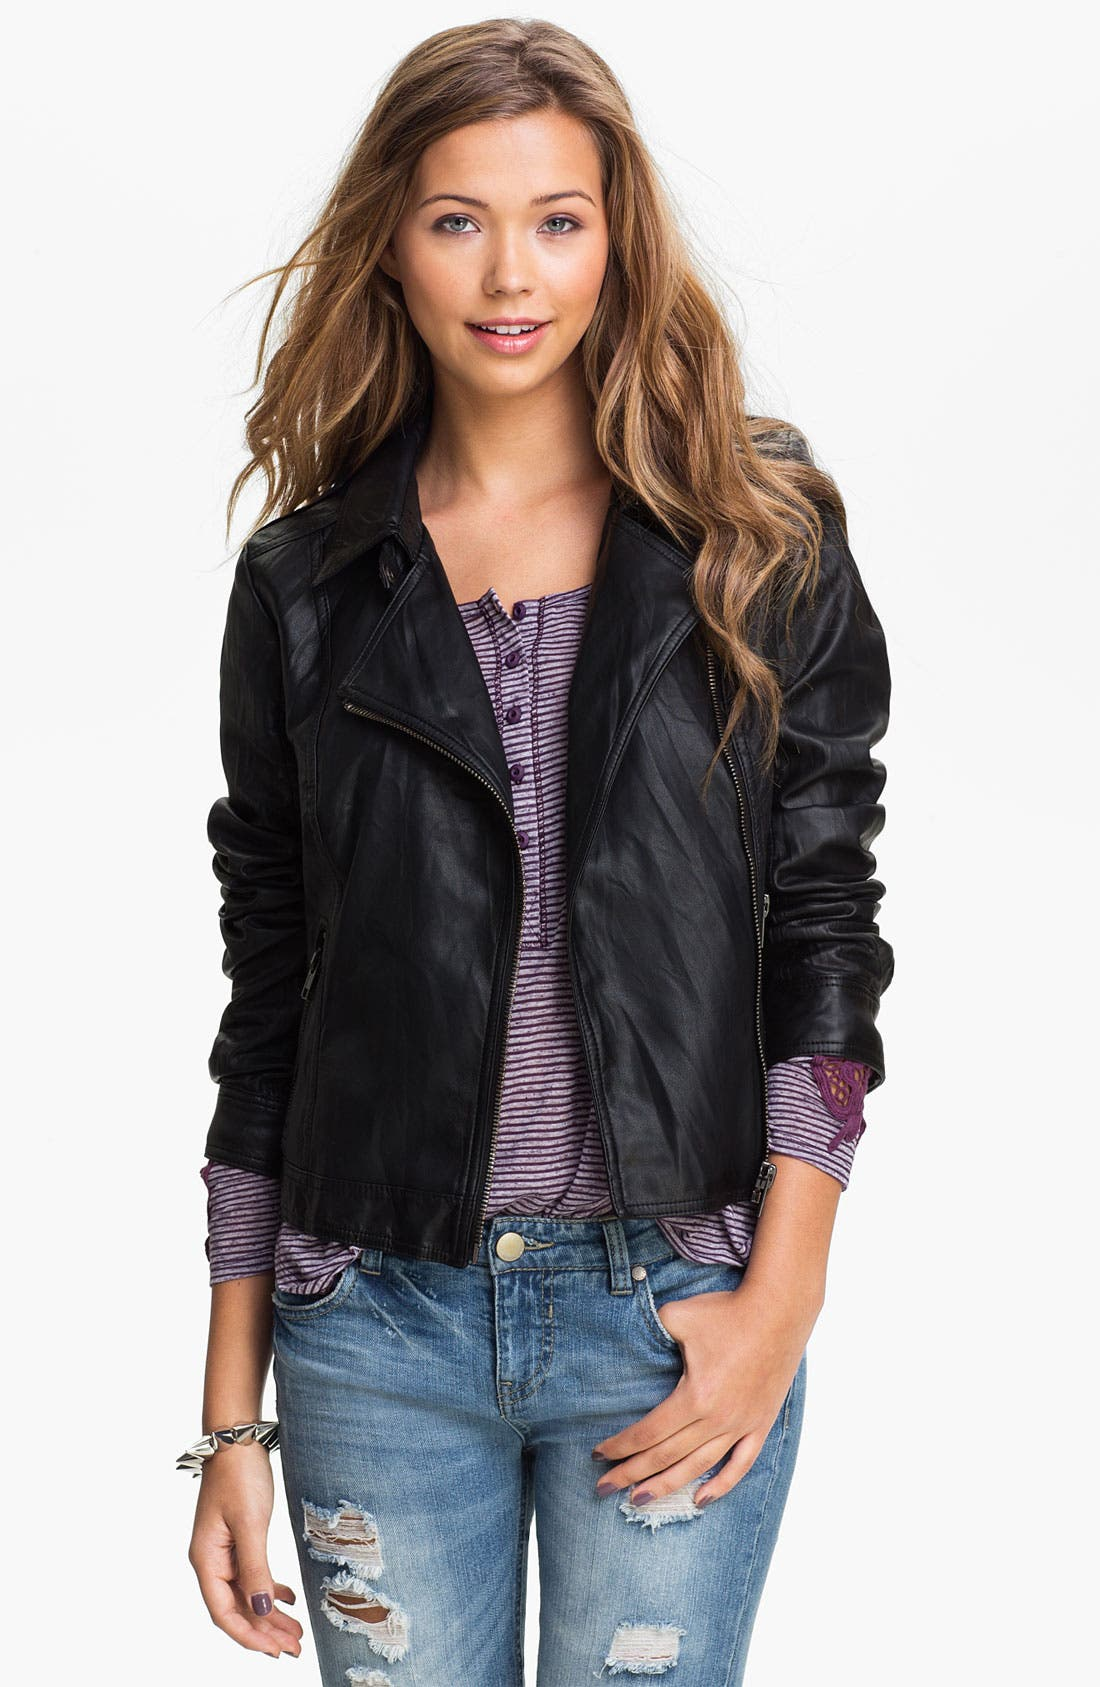 Alternate Image 1 Selected - Lost Faux Leather Biker Jacket (Juniors)